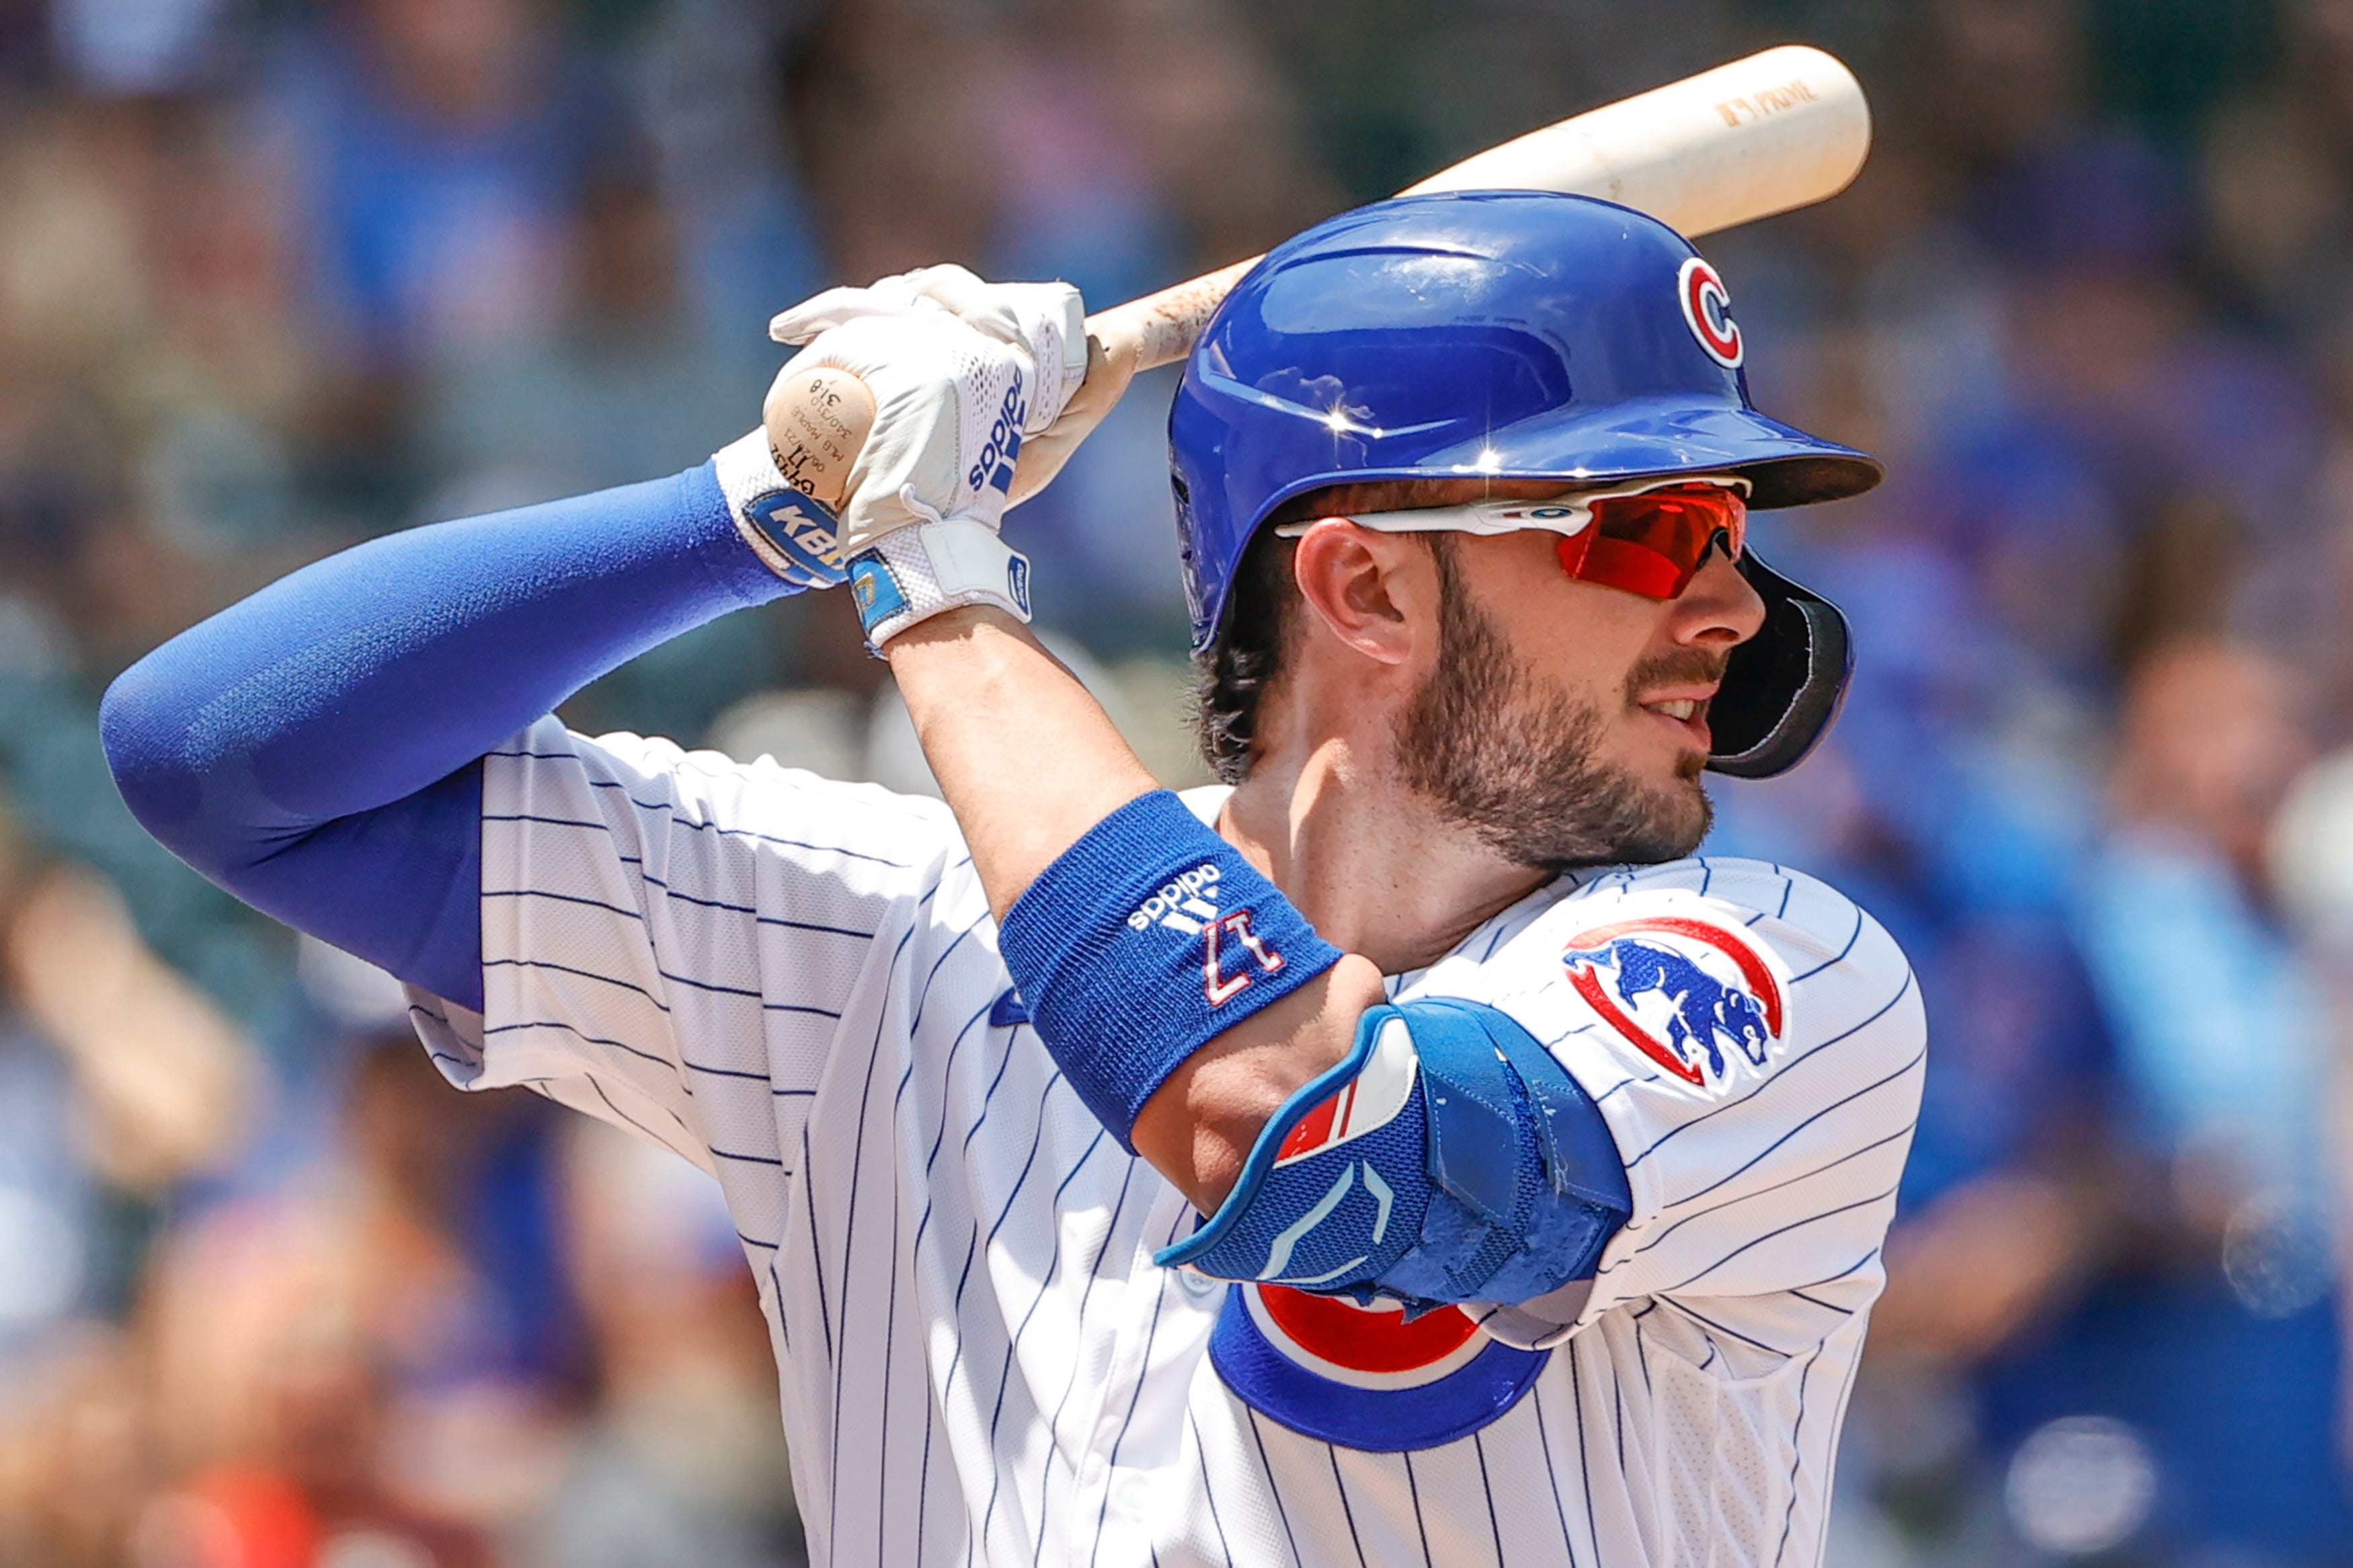 Giants getting Kris Bryant from Cubs in MLB trade deadline blockbuster as Chicago finishes tear-down